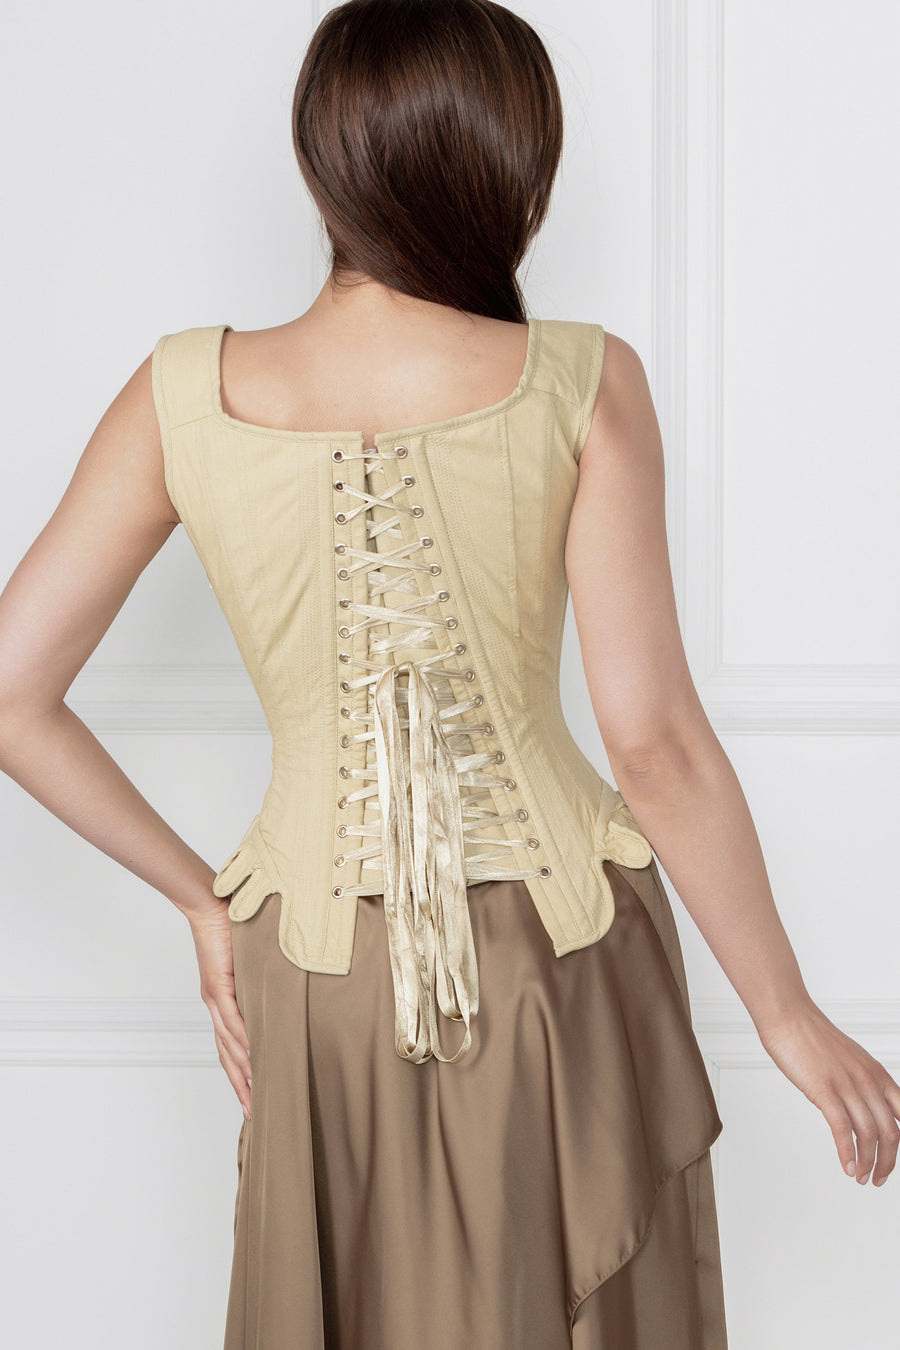 Historically Inspired 1600-1650 Cotton Overbust Corset